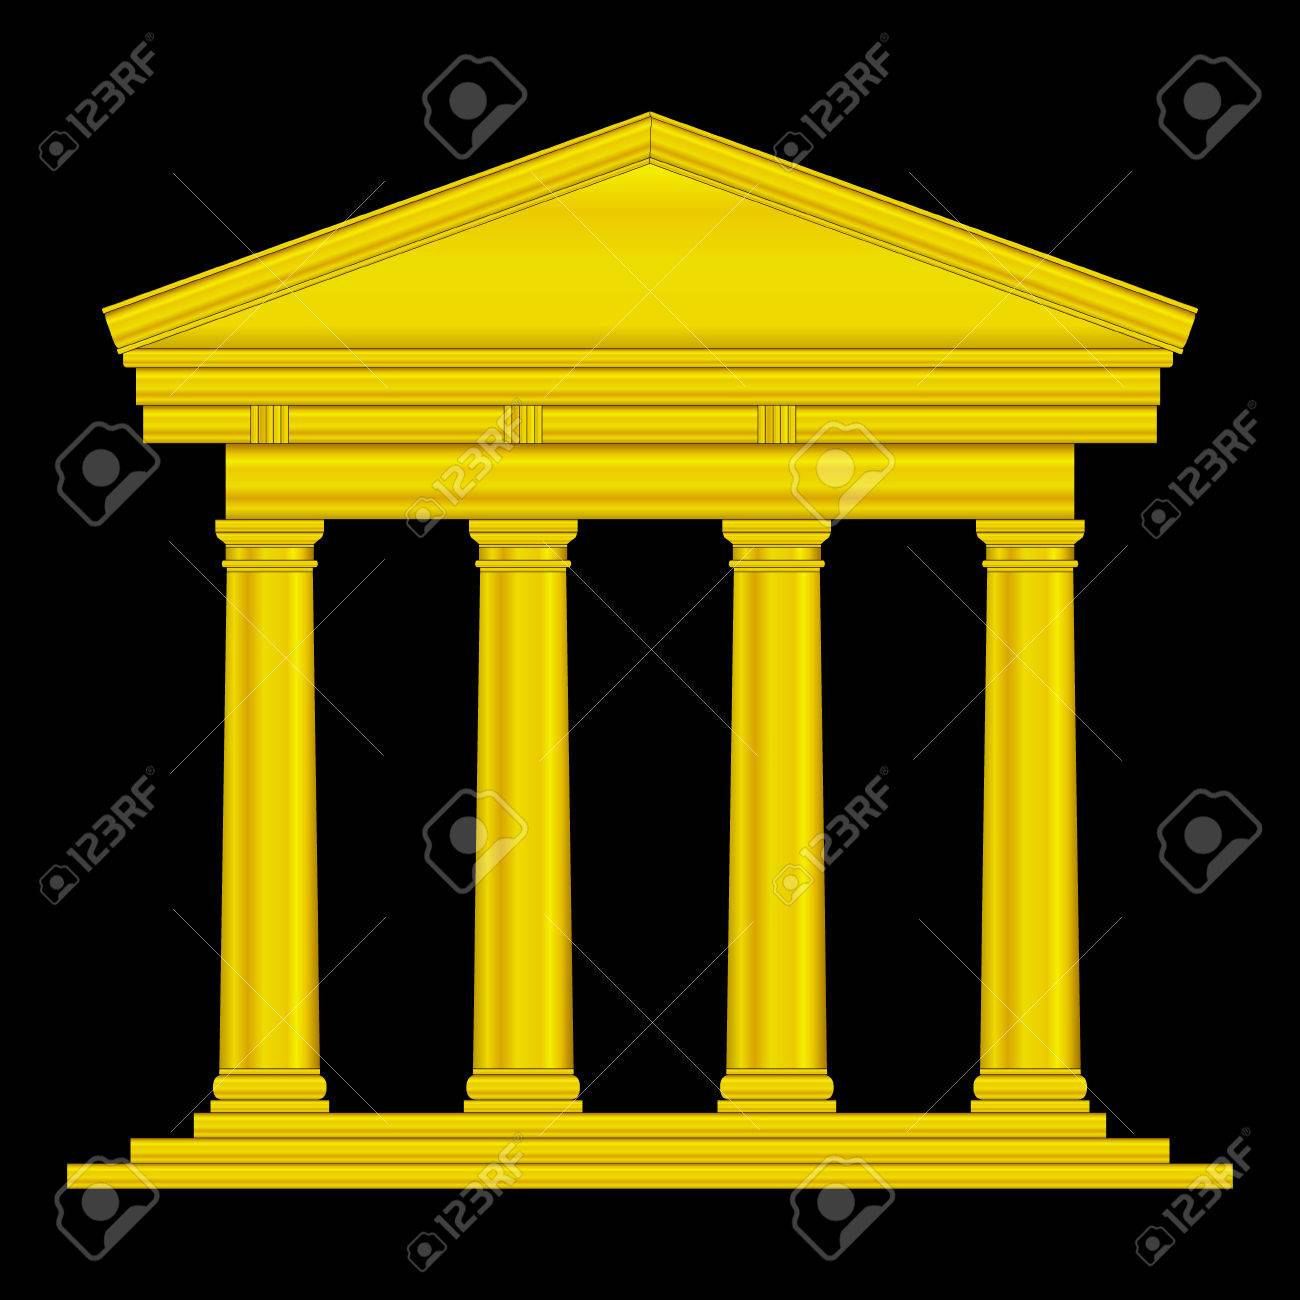 Gold tuscan temple isolated on black background. Stock Vector - 27293569